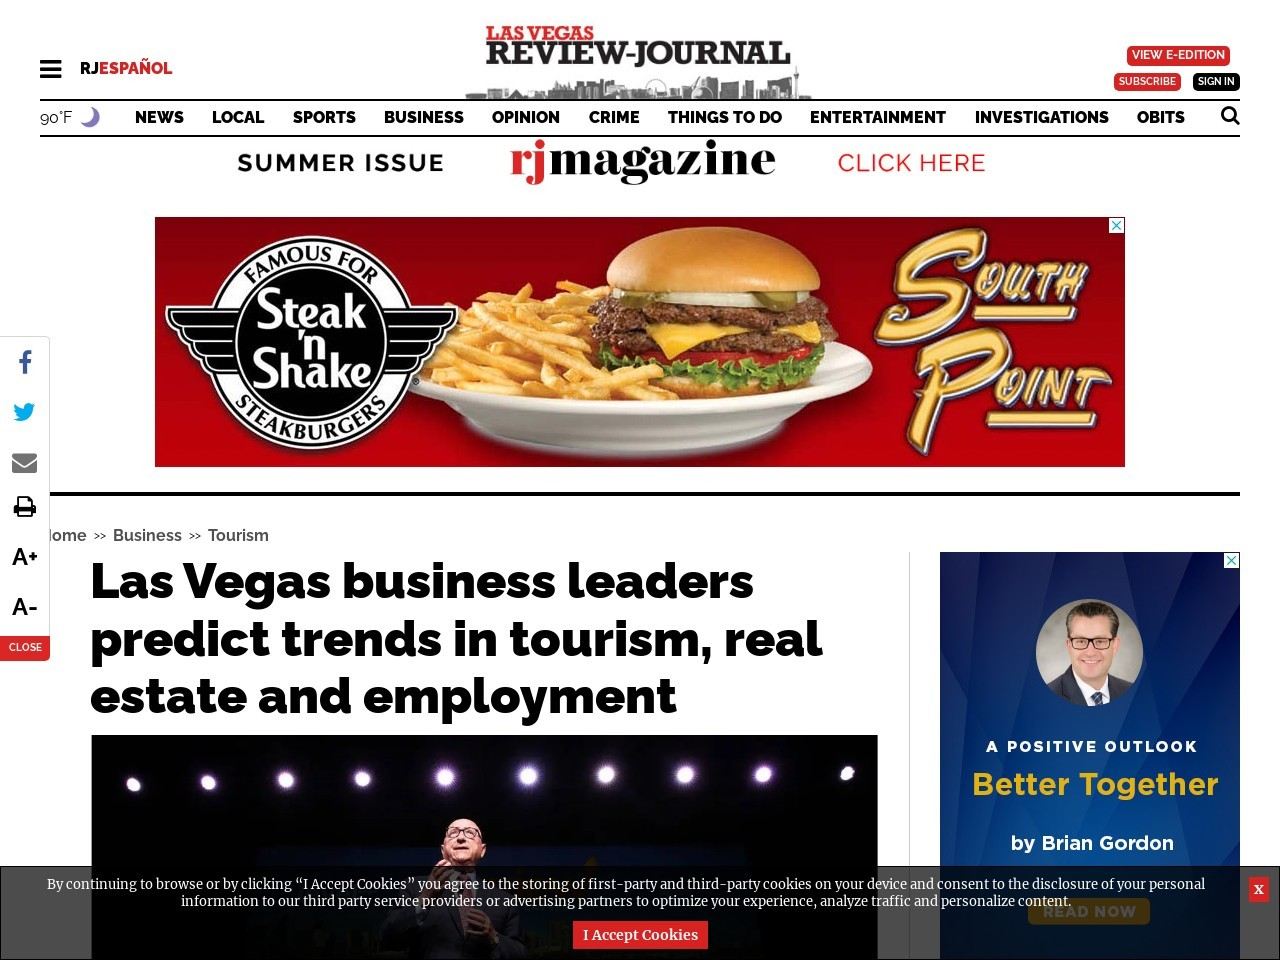 Las Vegas business leaders predict trends in tourism, real estate and employment